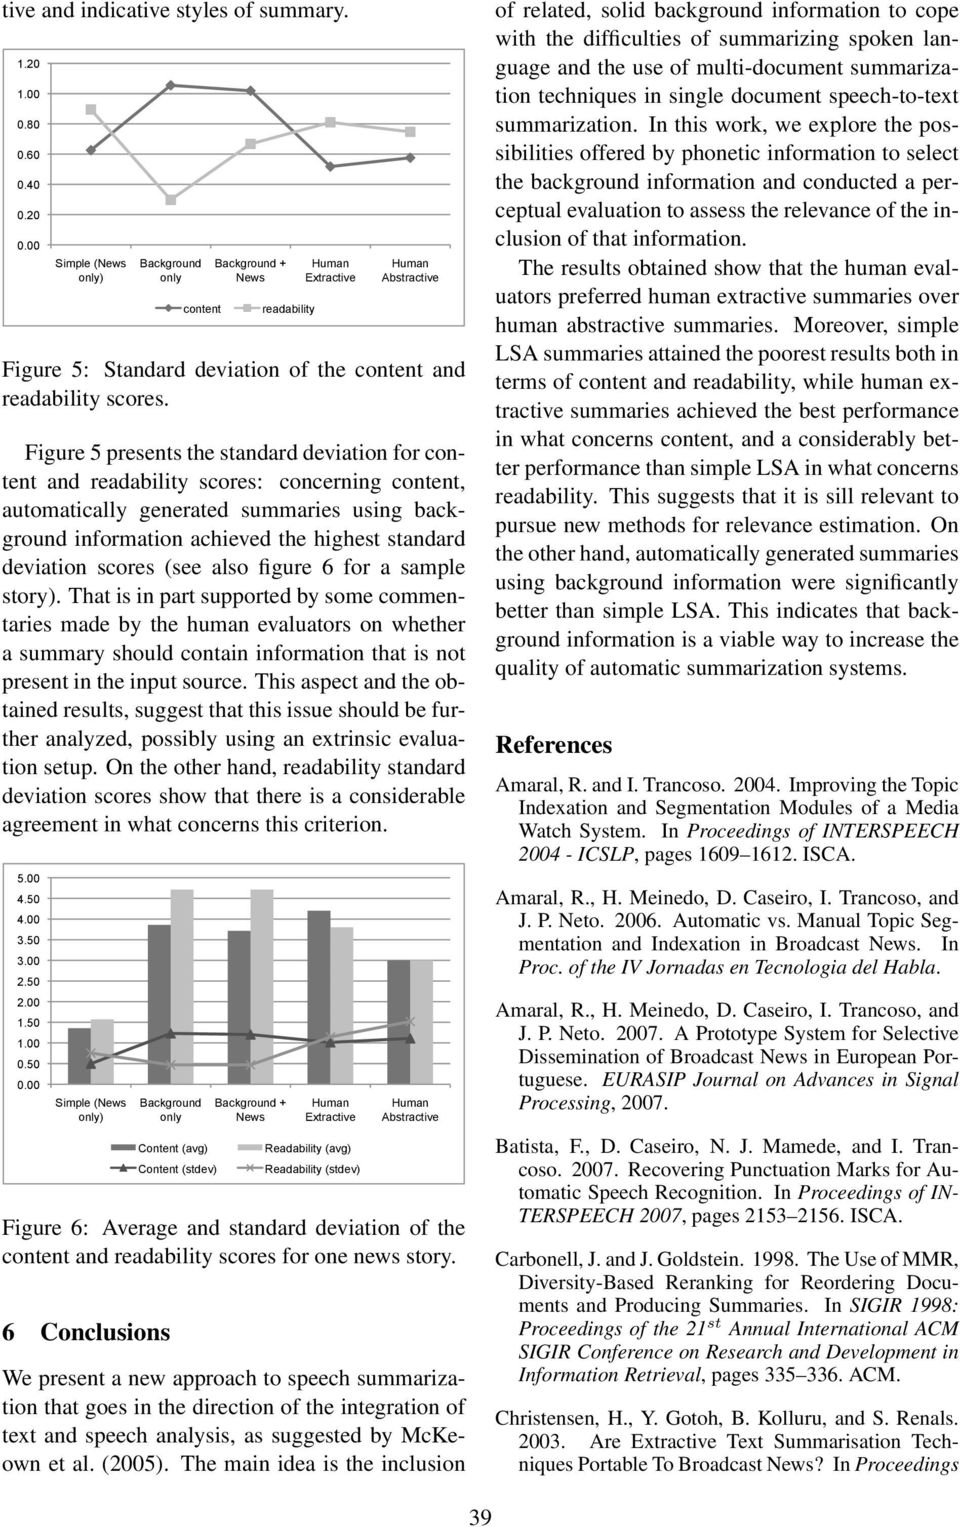 Figure 5 presents the standard deviation for content and readability scores: concerning content, automatically generated summaries using background information achieved the highest standard deviation